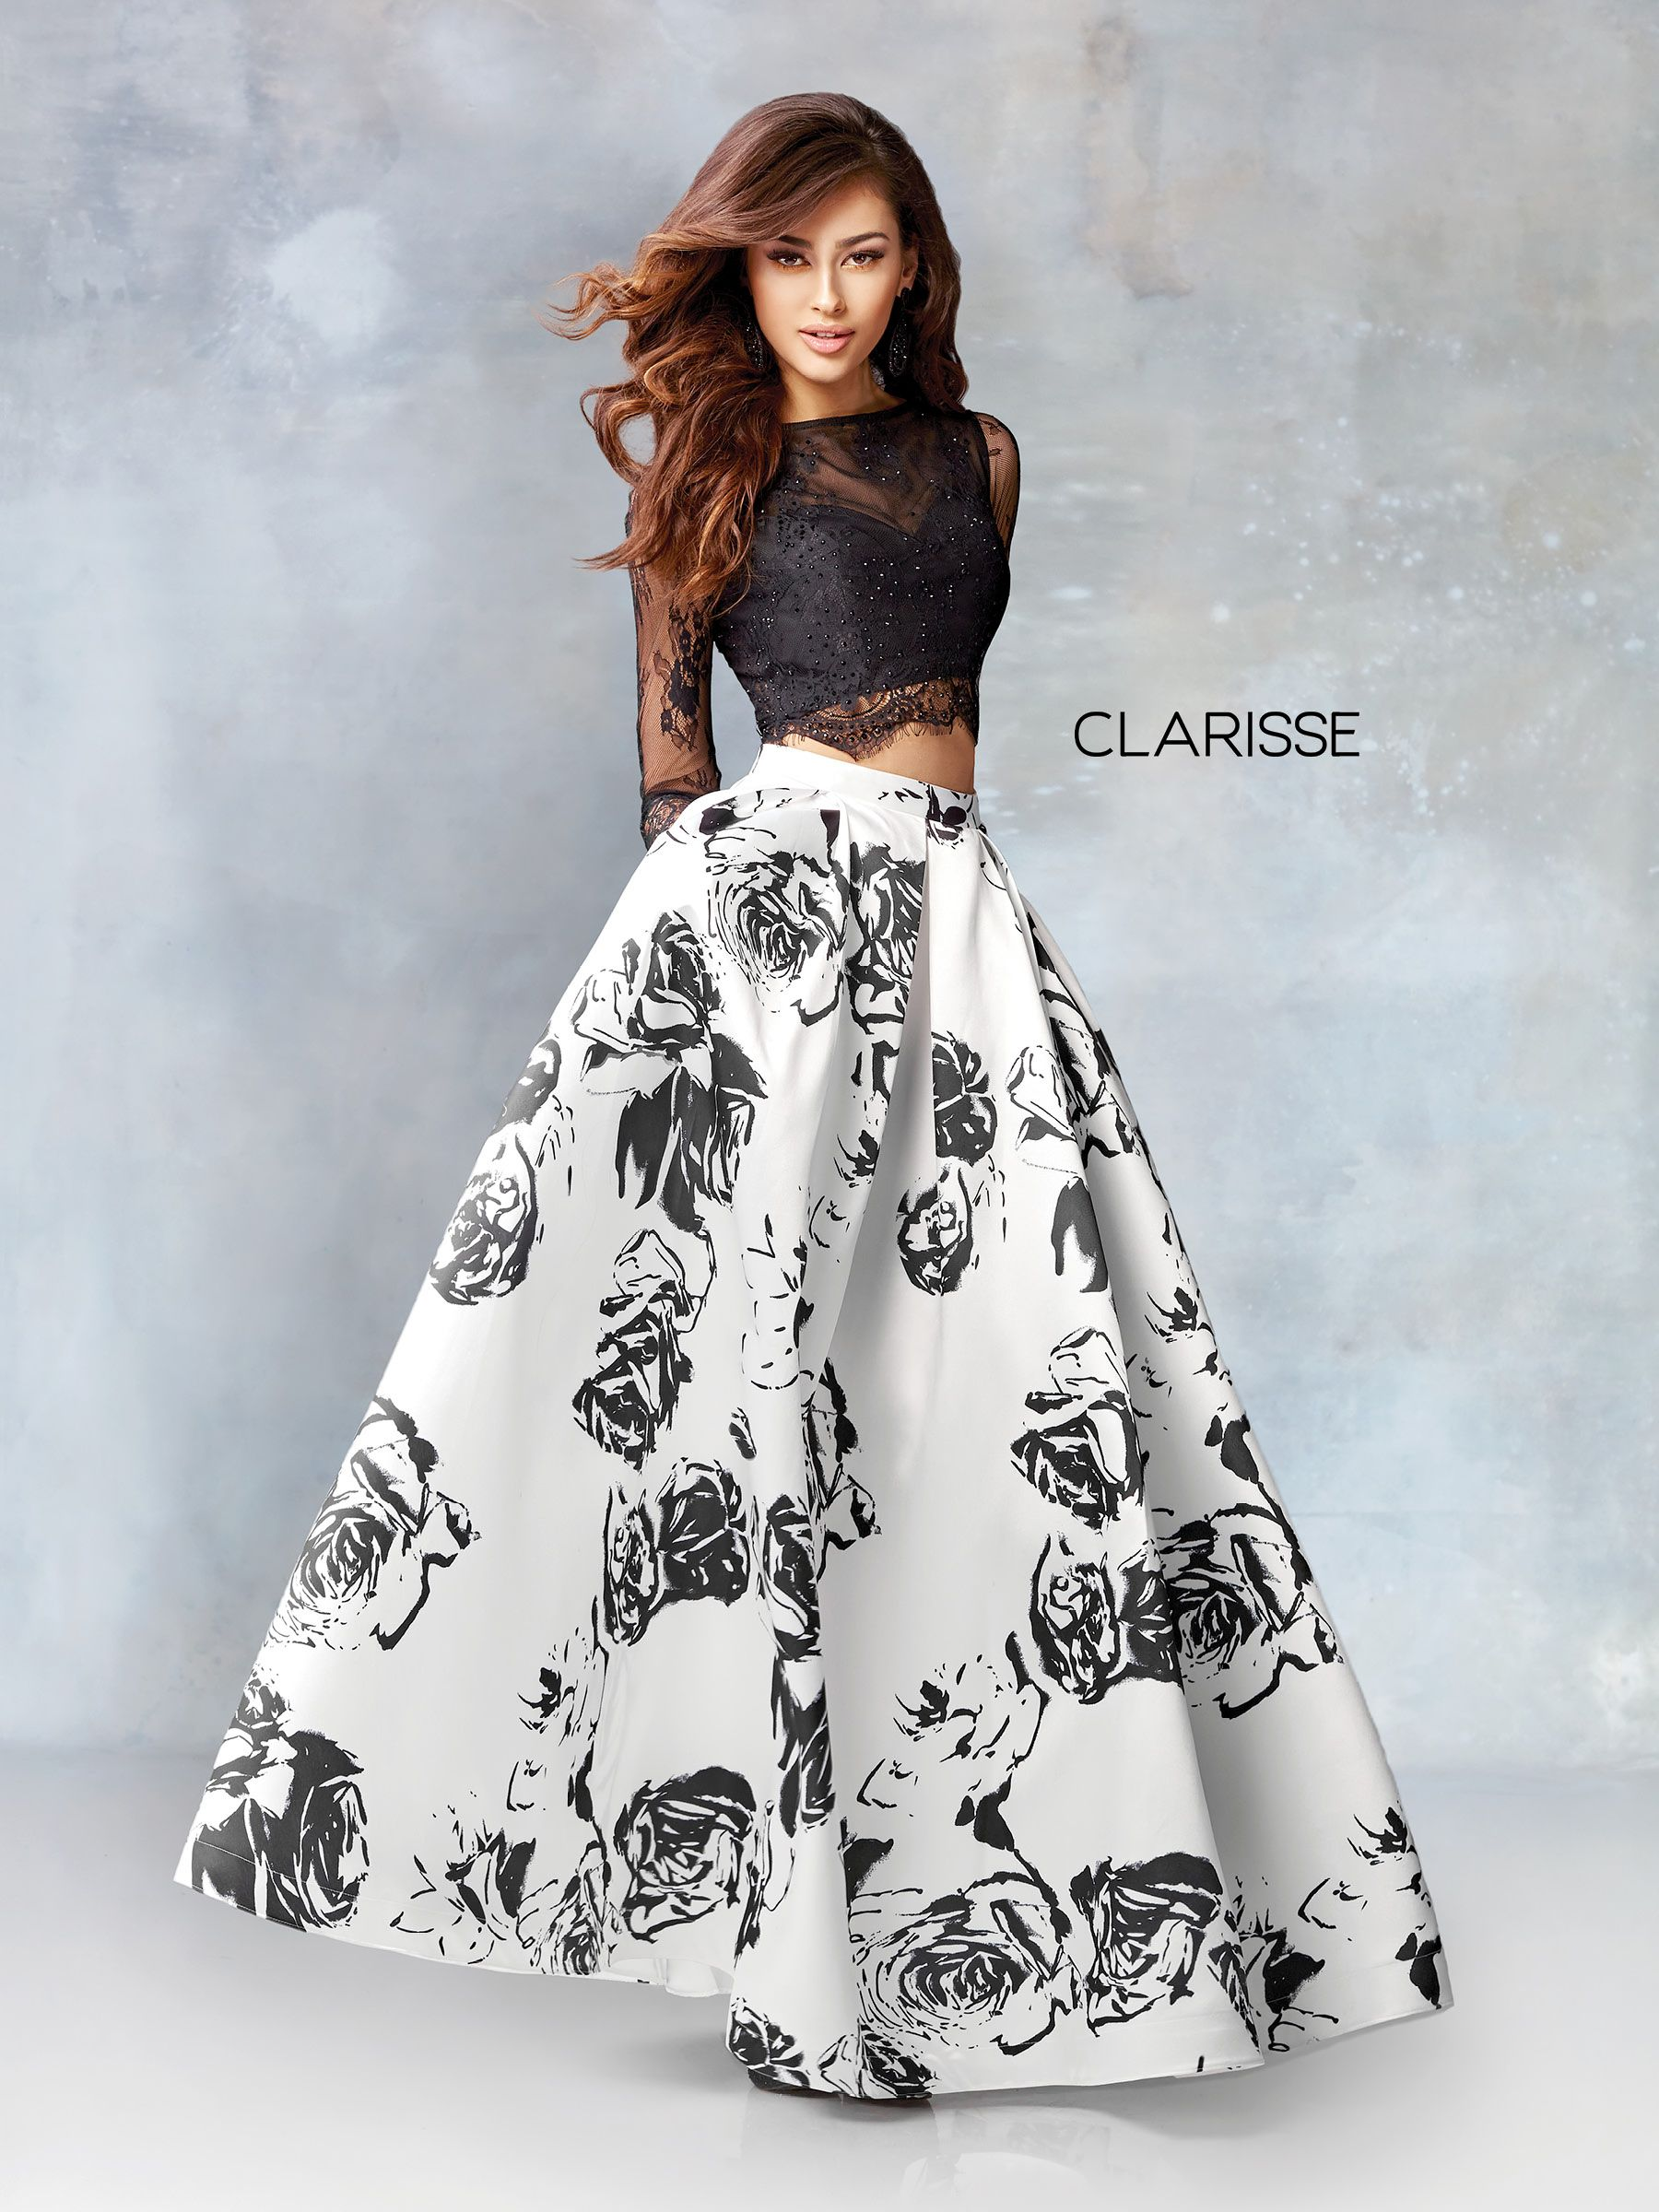 3579 Black And White Two Piece Dress With Laced Long Sleeves And A Floral Mikado Print Gown Thời Trang [ 2400 x 1800 Pixel ]